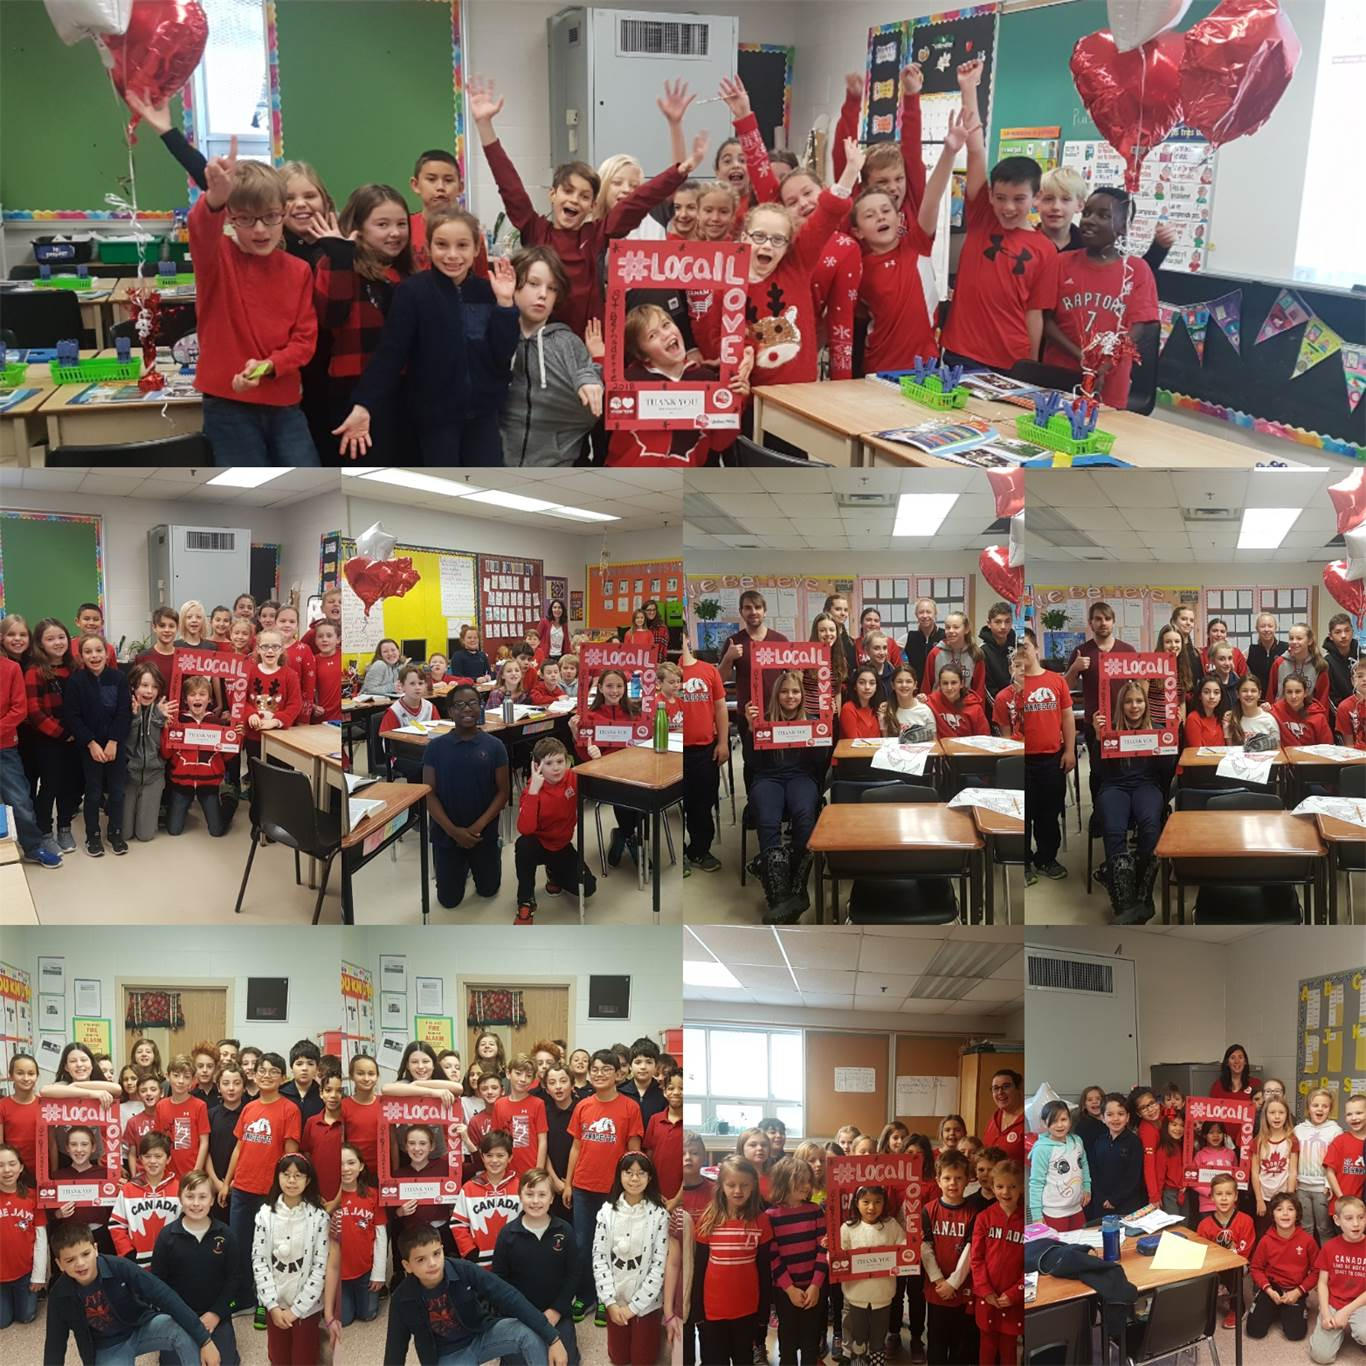 Staff at St. Bernadette won the Director's Pizza Party awarded to the school with the most creative United Way campaign. St. Bernadette flaunted its red and white spirit with a #locallove photo hashtag campaign, dress down days and daily United Way impact announcements.